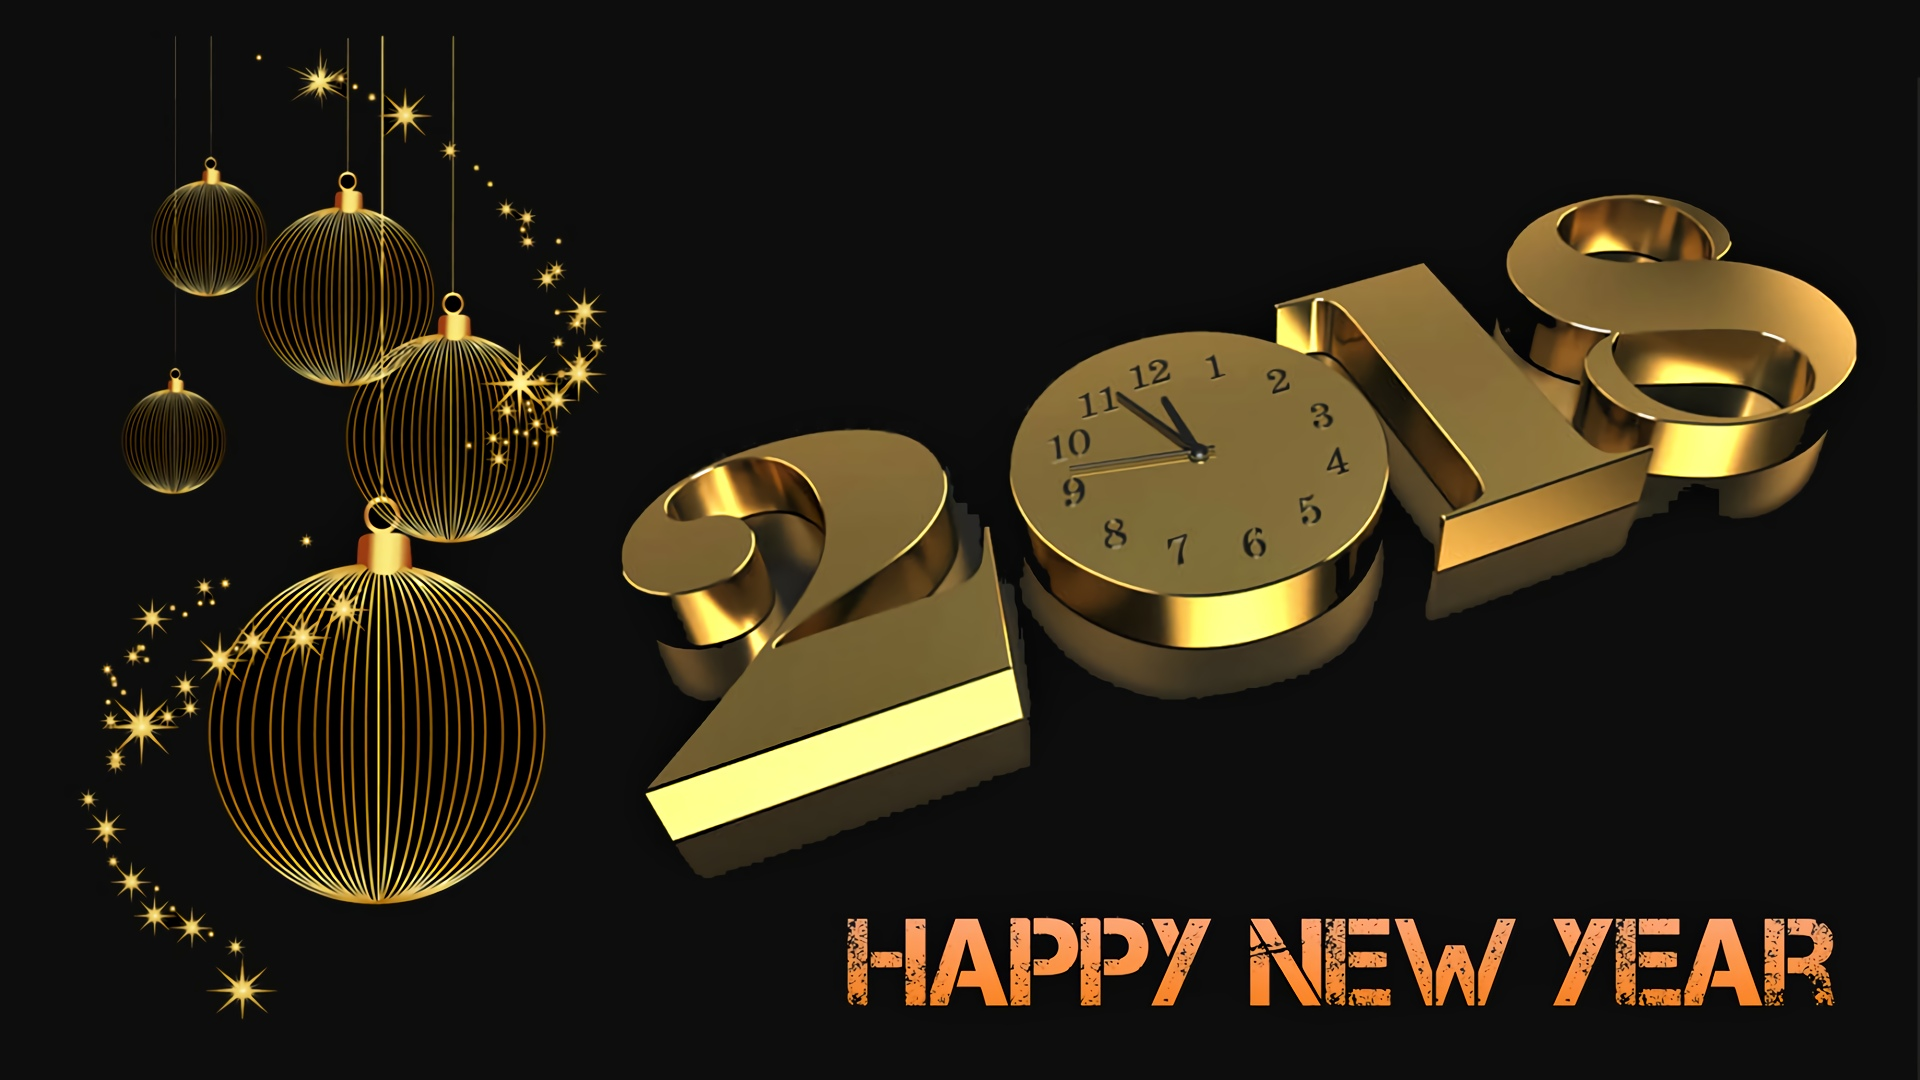 golden time and a happy new year 2018 hd wallpaper